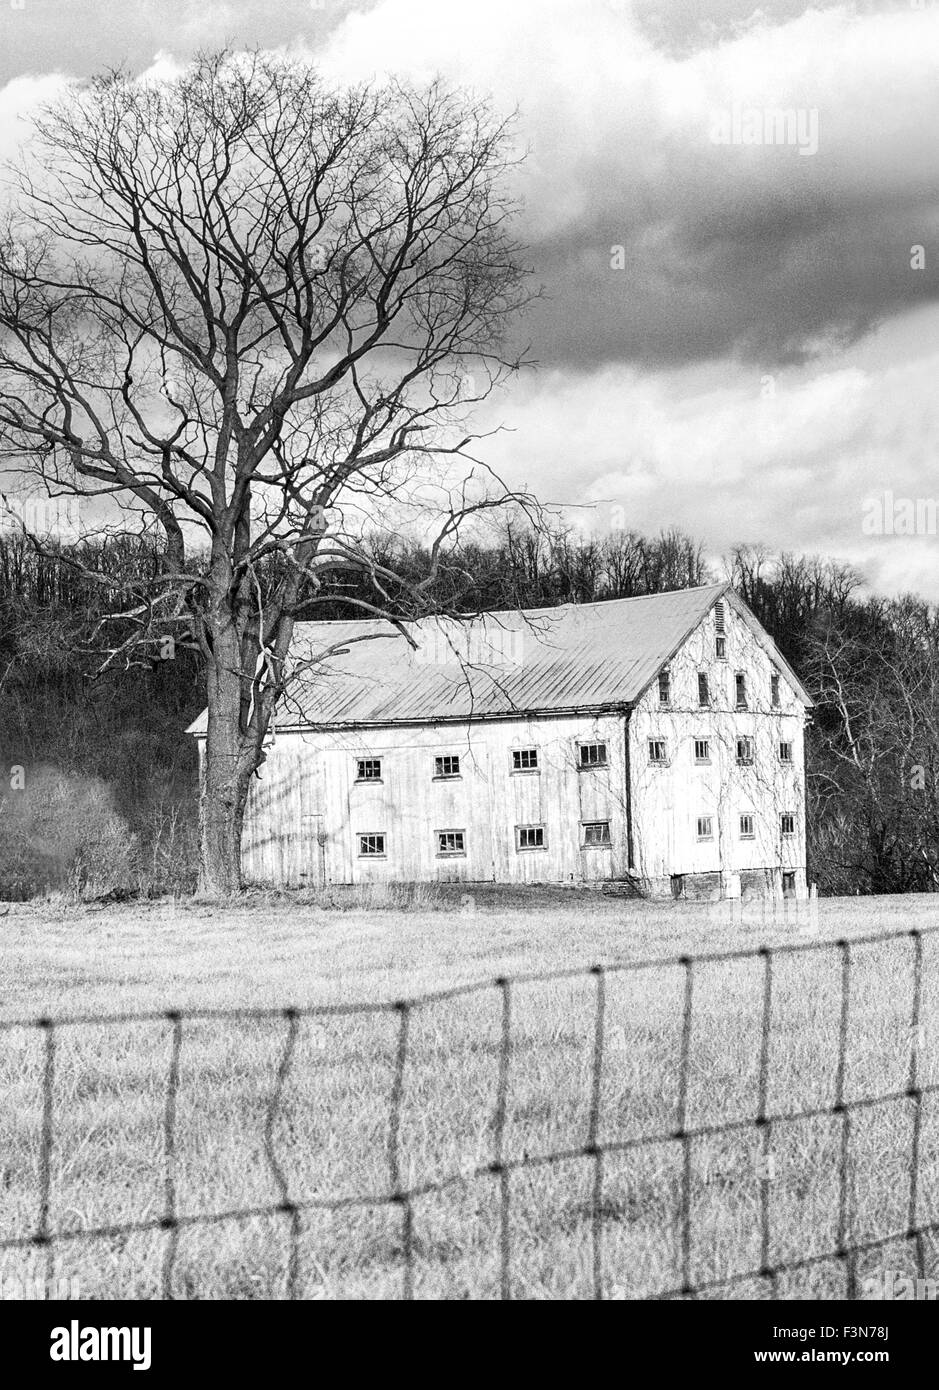 black and white version of old antique wooden barn with lots of windows in the country with an old tree and  wire - Stock Image